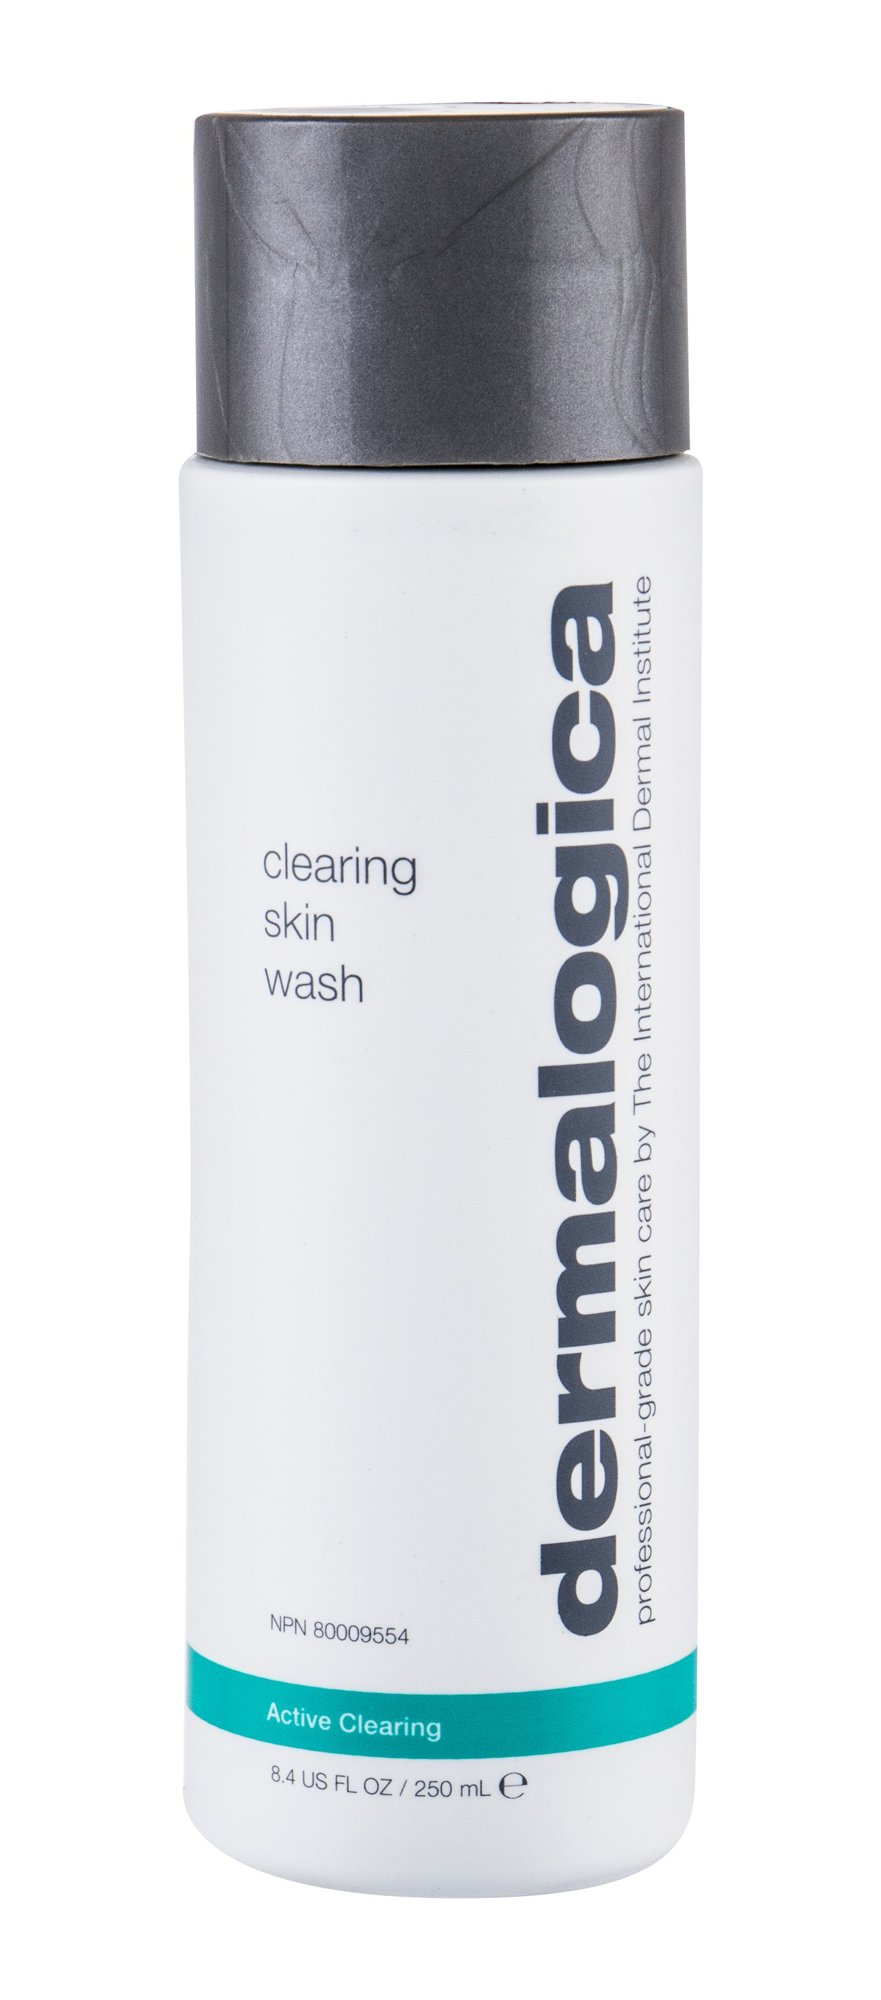 Dermalogica Active Clearing Cleansing Mousse 250ml  Clearing Skin Wash